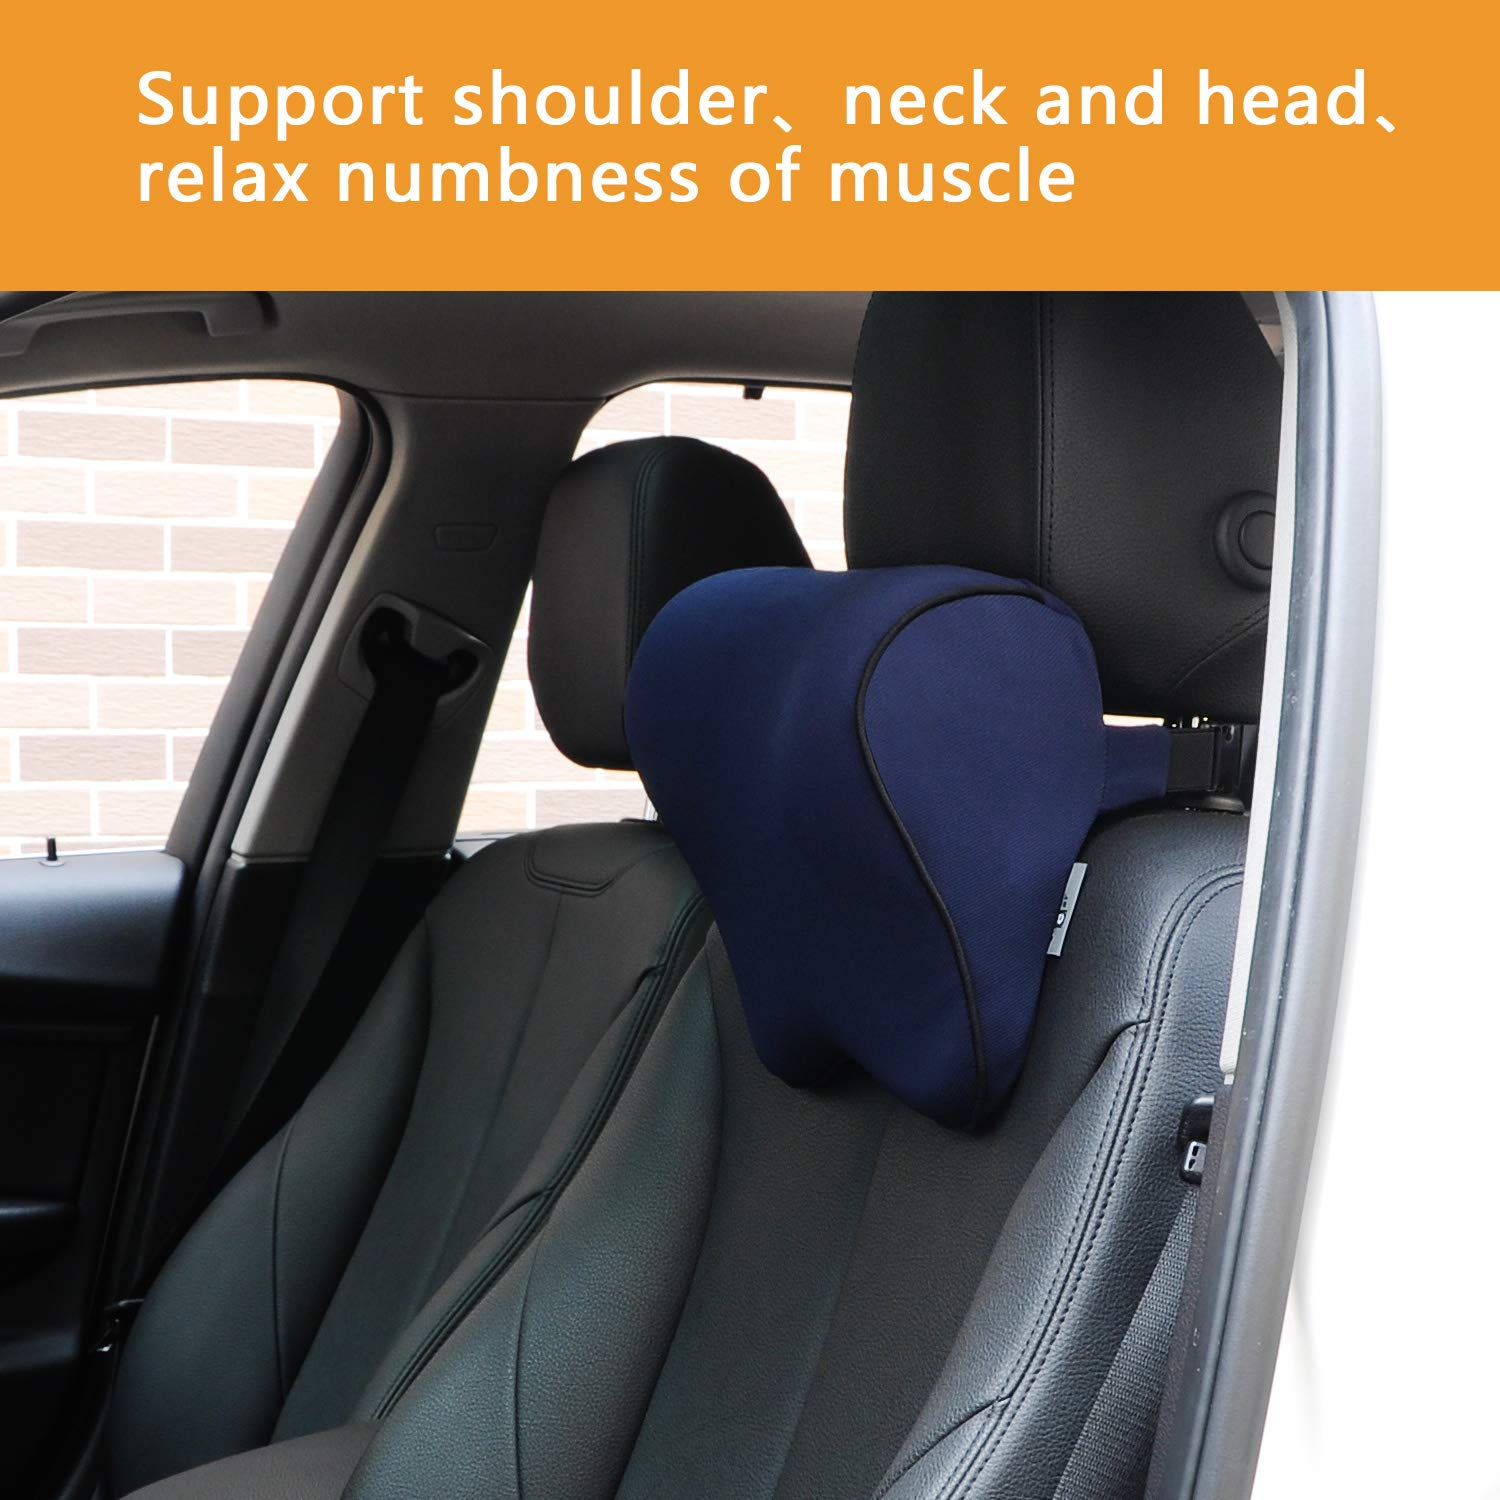 Dreamer Car Back Support in Car /& Headrest Pillow Kit Designed for Car Seat,High Density Memory Foam Ergonomically Designed for Full Back and Head Support and Back Pain Relief,Deep Blue